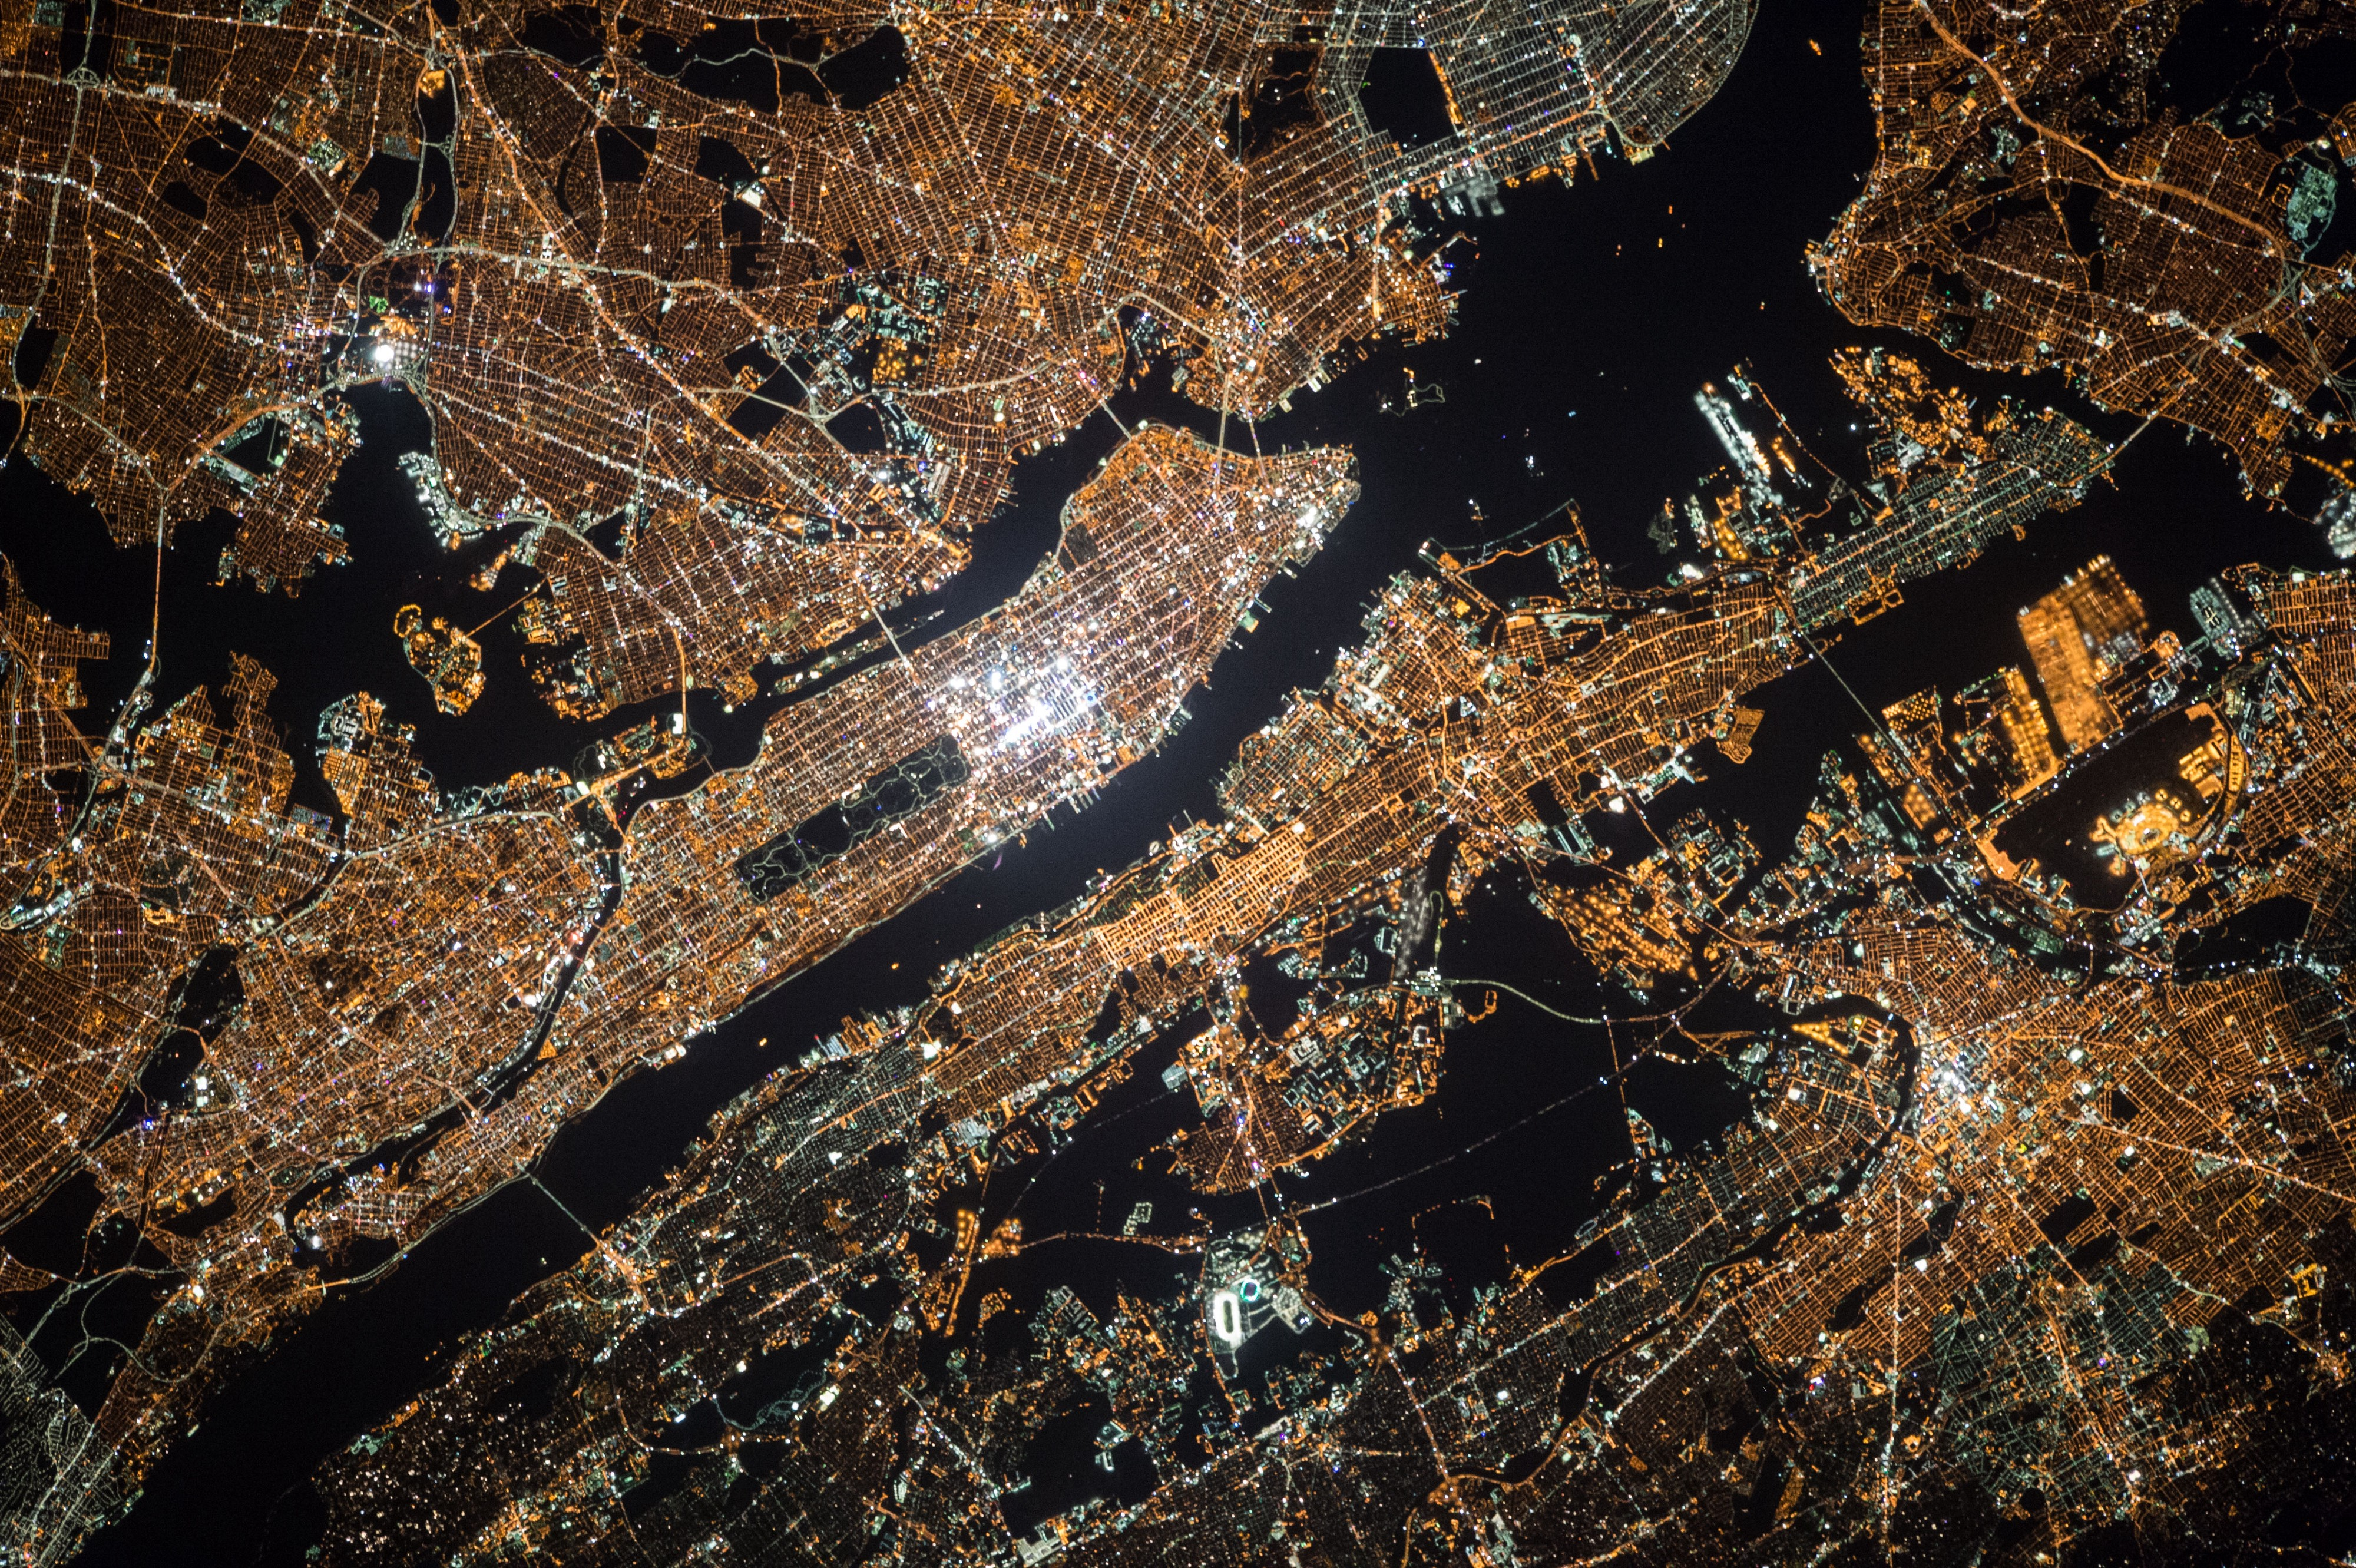 New York City from the space